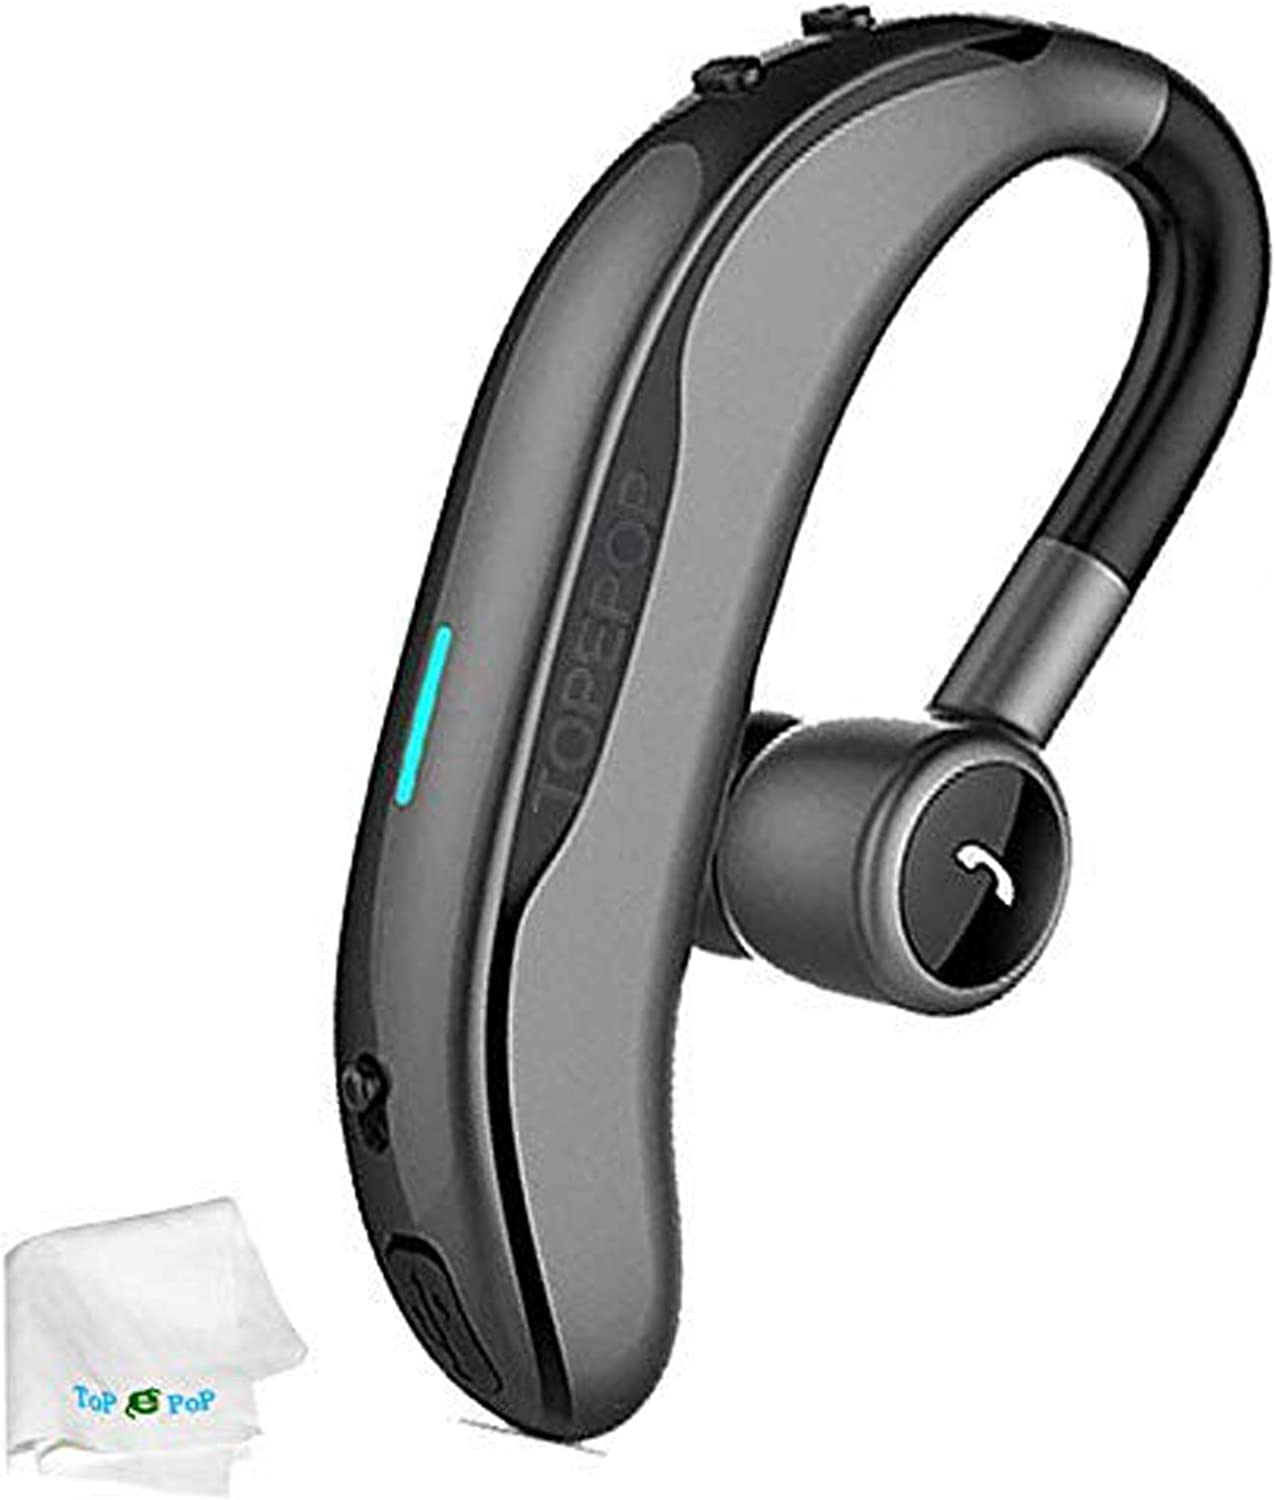 Bluetooth Headset Wireless Headphone Handsfree Call Earpiece Noise Cancelling Earbud Long Standby Time Earphone Compatible with Smart Cell Phones Car Driver Trucker Business Office Men Women (Grey)